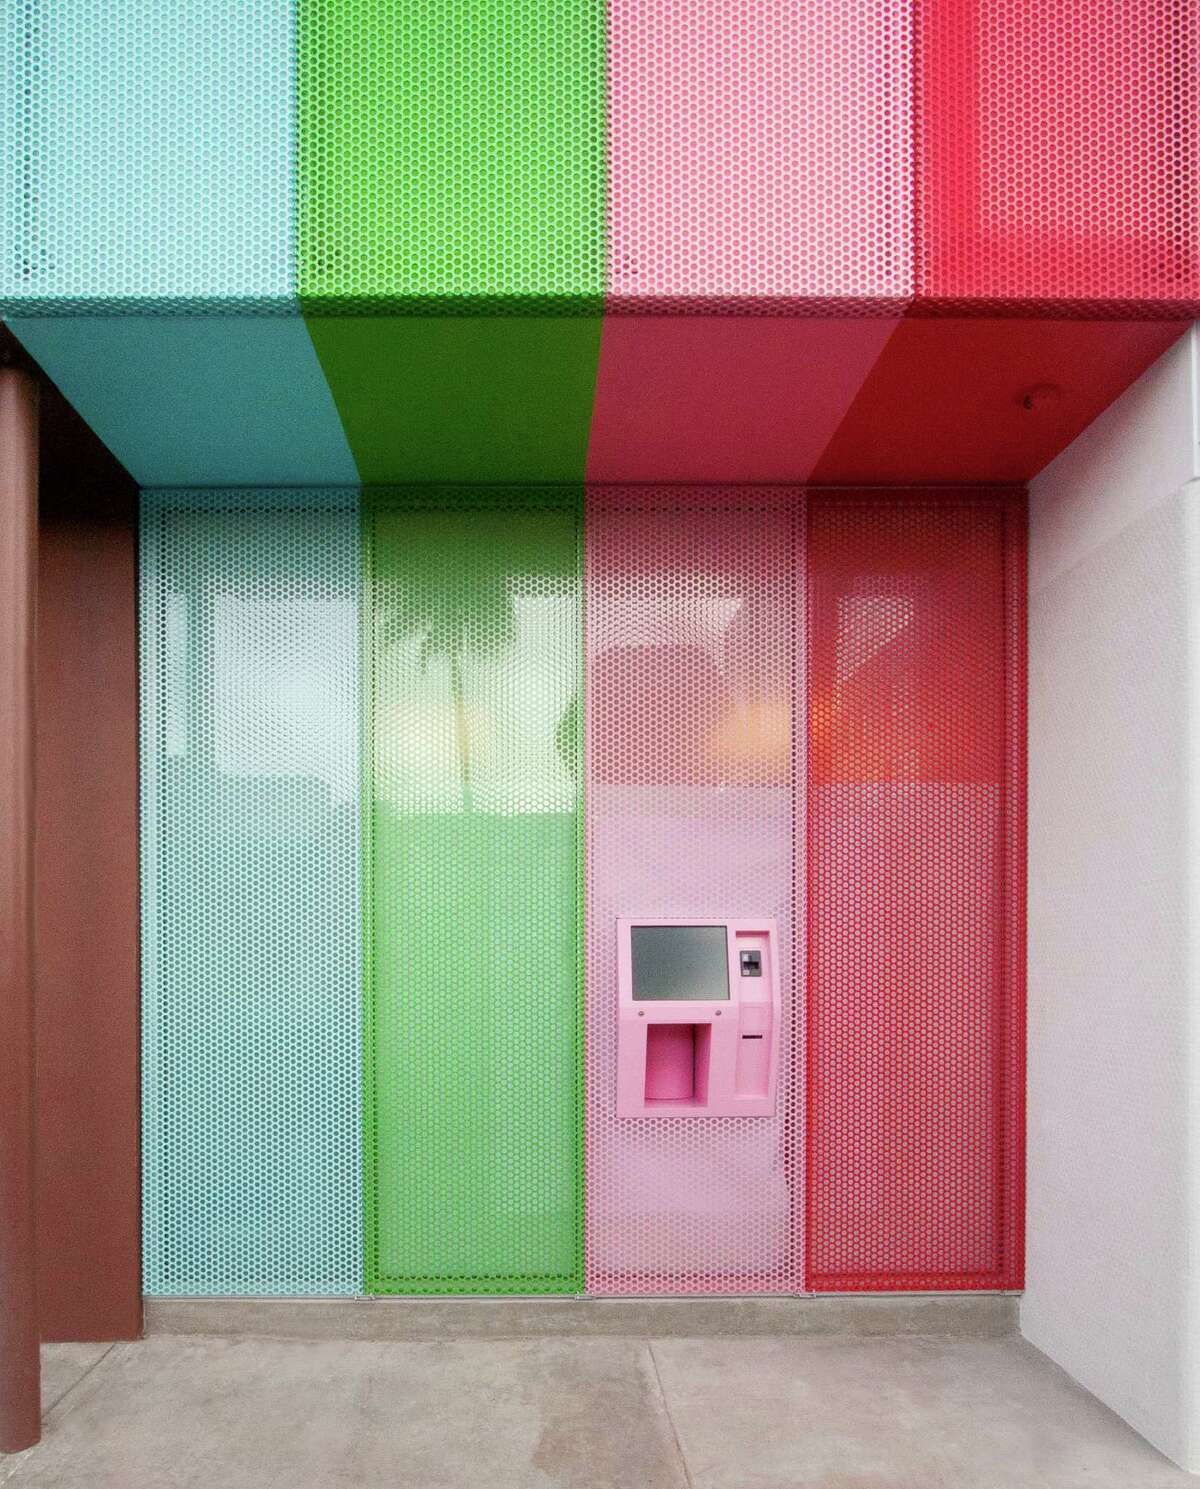 Sprinkles holds a trademark on the term Cupcake ATM. It opened the first 24-hour cupcake machine last year at its flagship store in Beverly Hills. Houston's Cupcake ATM is expected to arrive in October.